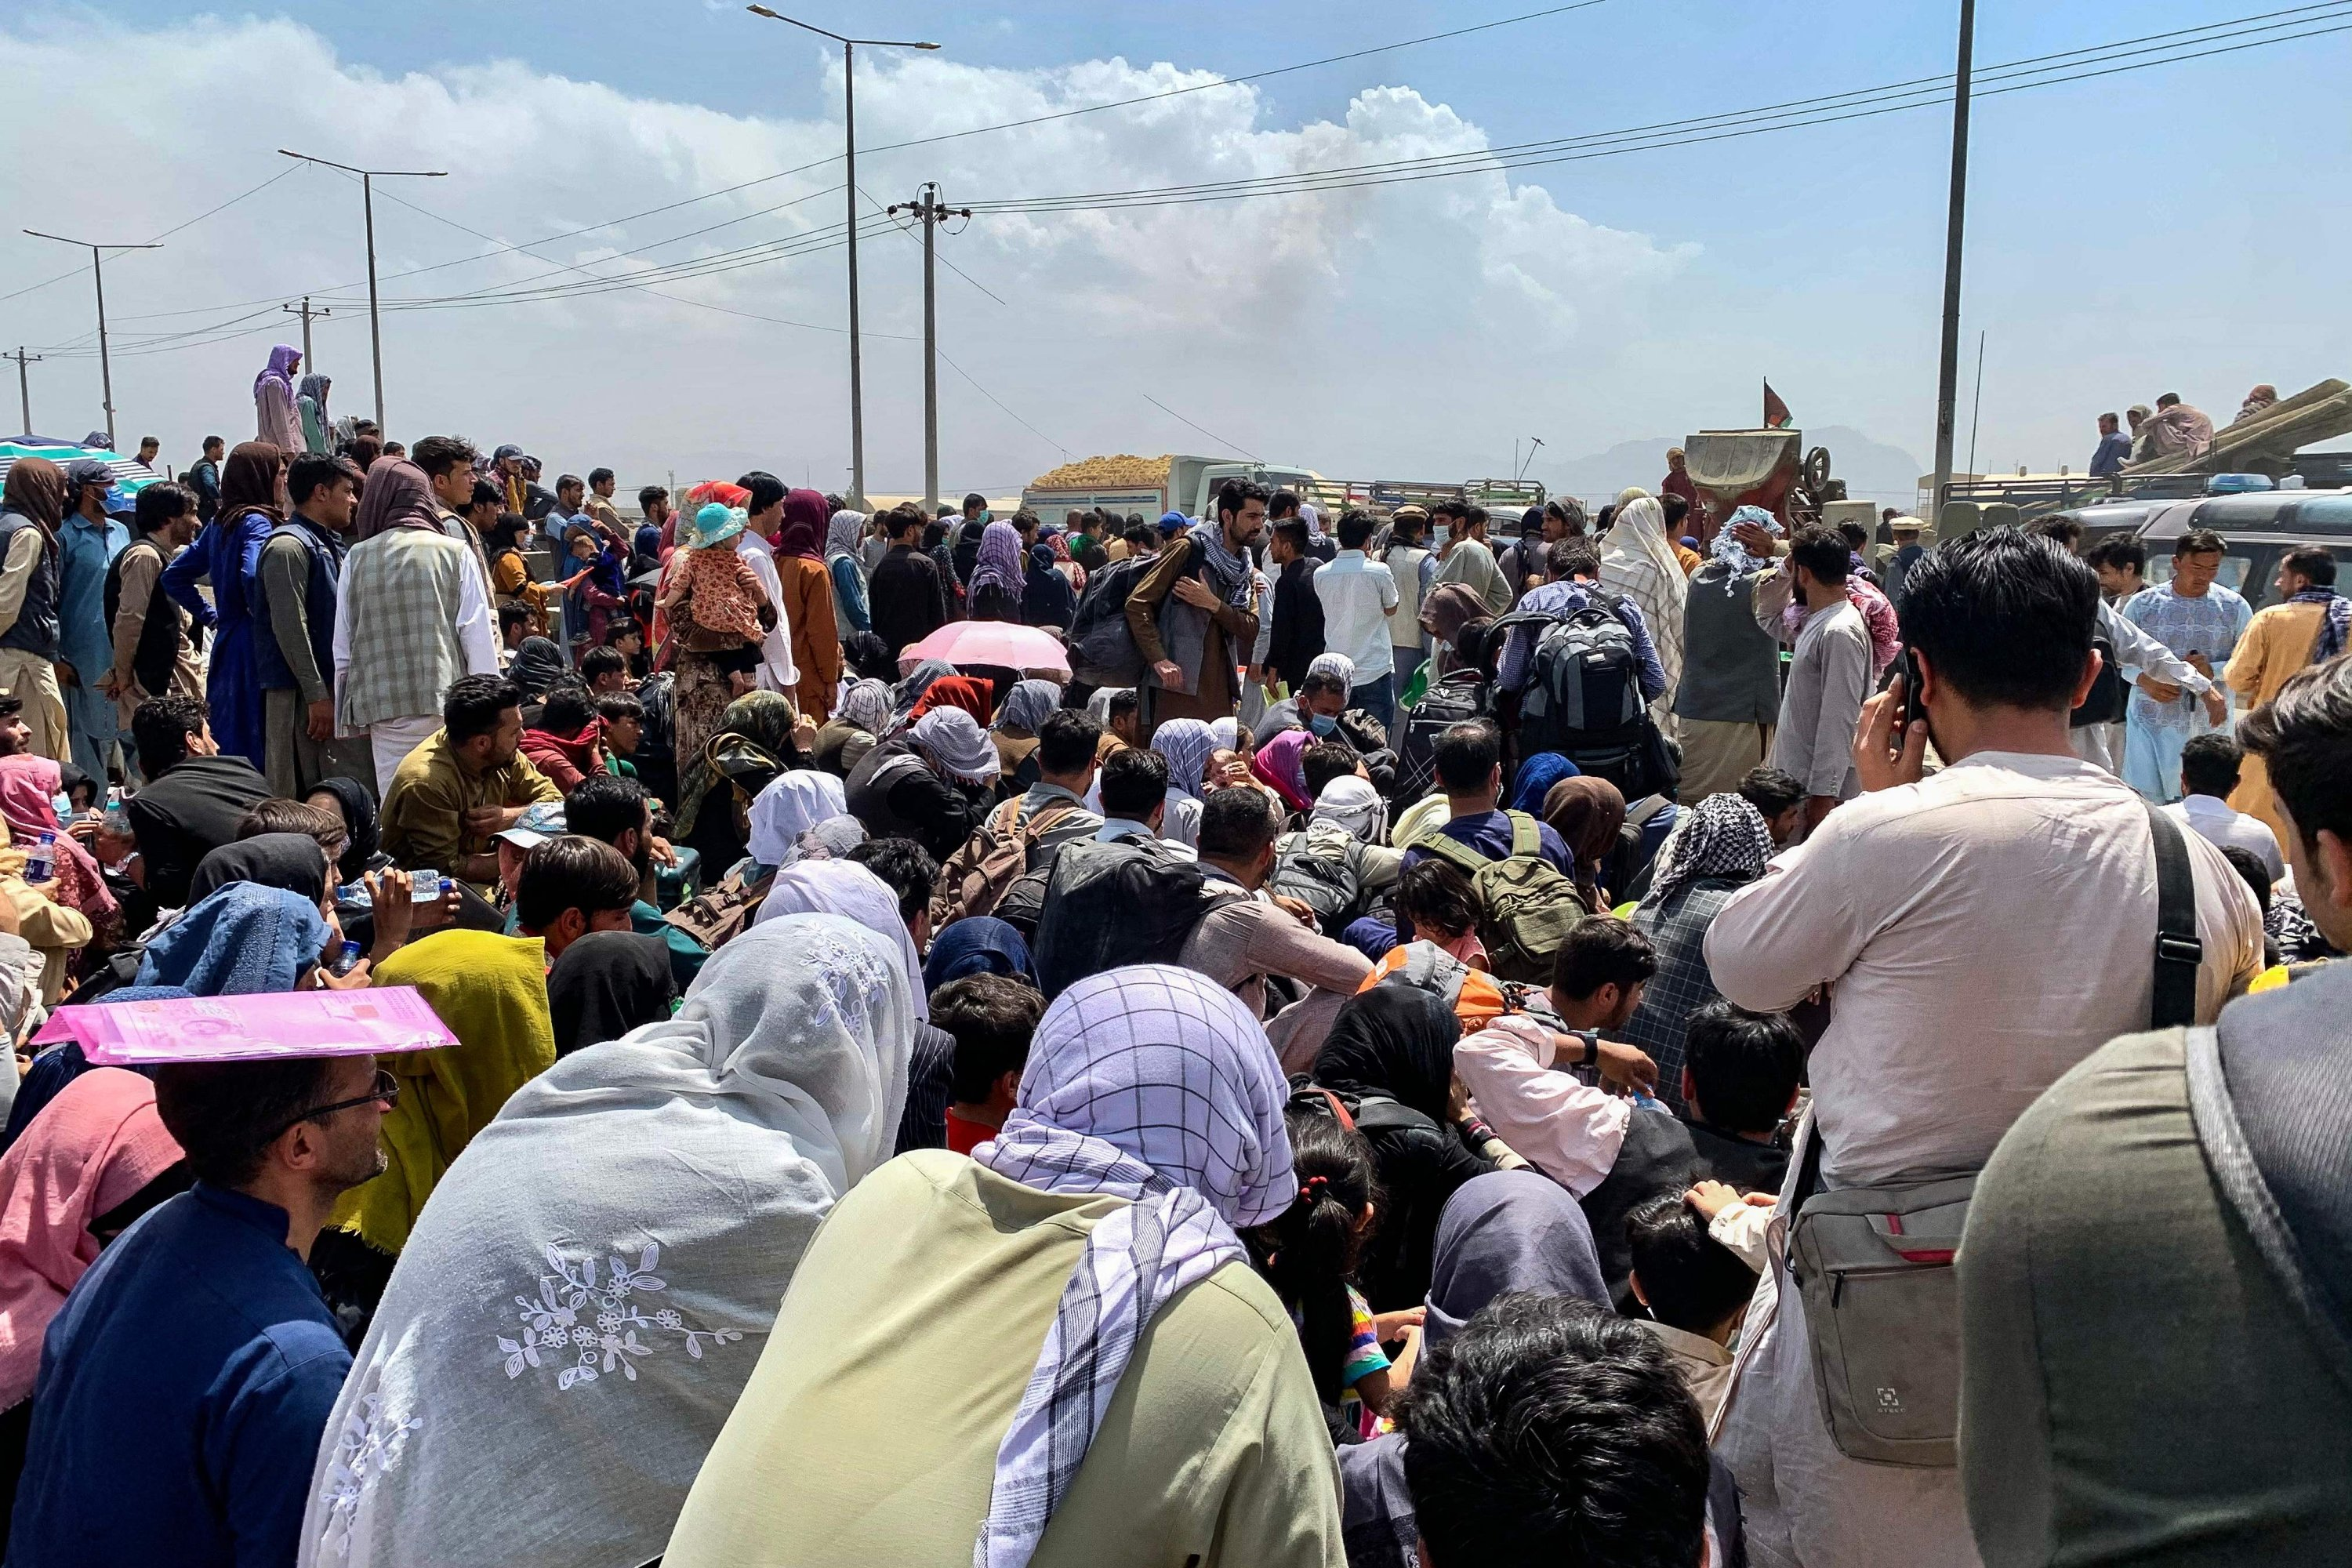 Afghan people gather along a road as they wait to board a U.S. military aircraft to leave the country, at a military airport in Kabul, Afghanistan, Aug. 20, 2021, days after the Taliban's military takeover of the country. (AFP Photo)